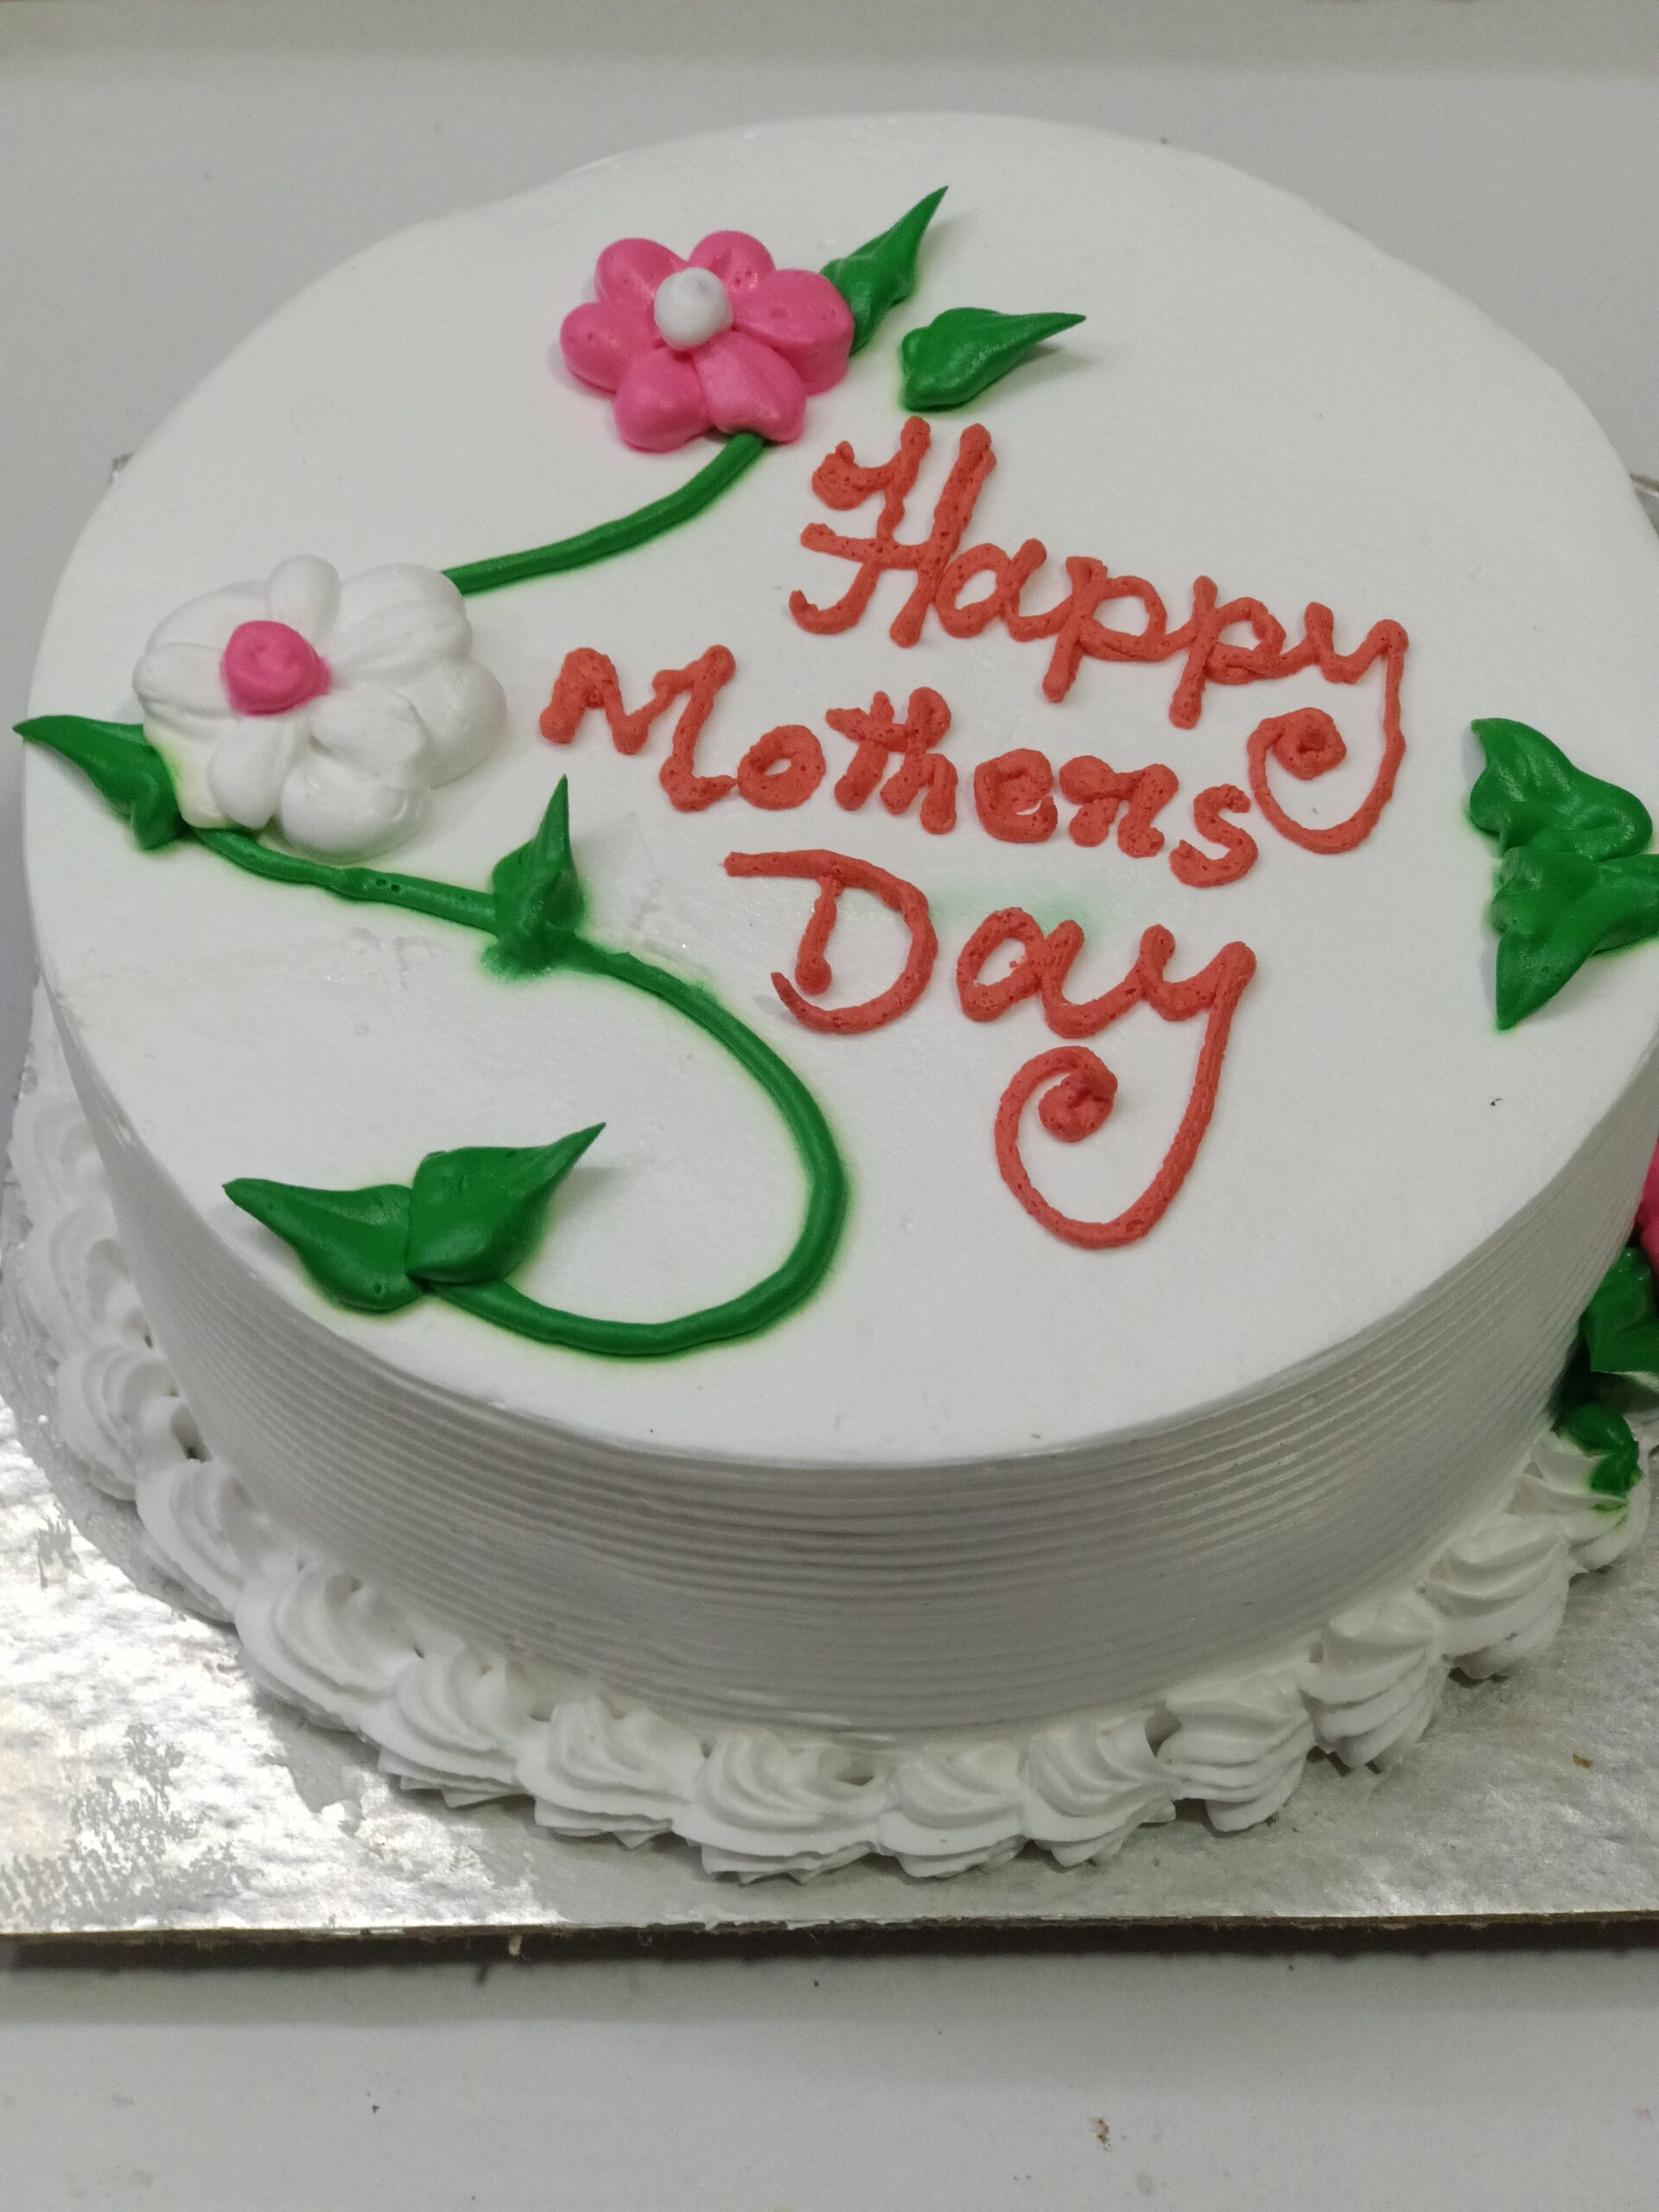 Mothers Day Cake Vanilla, Asansol Cake Delivery Shop, Mothers Day Cake Vanilla